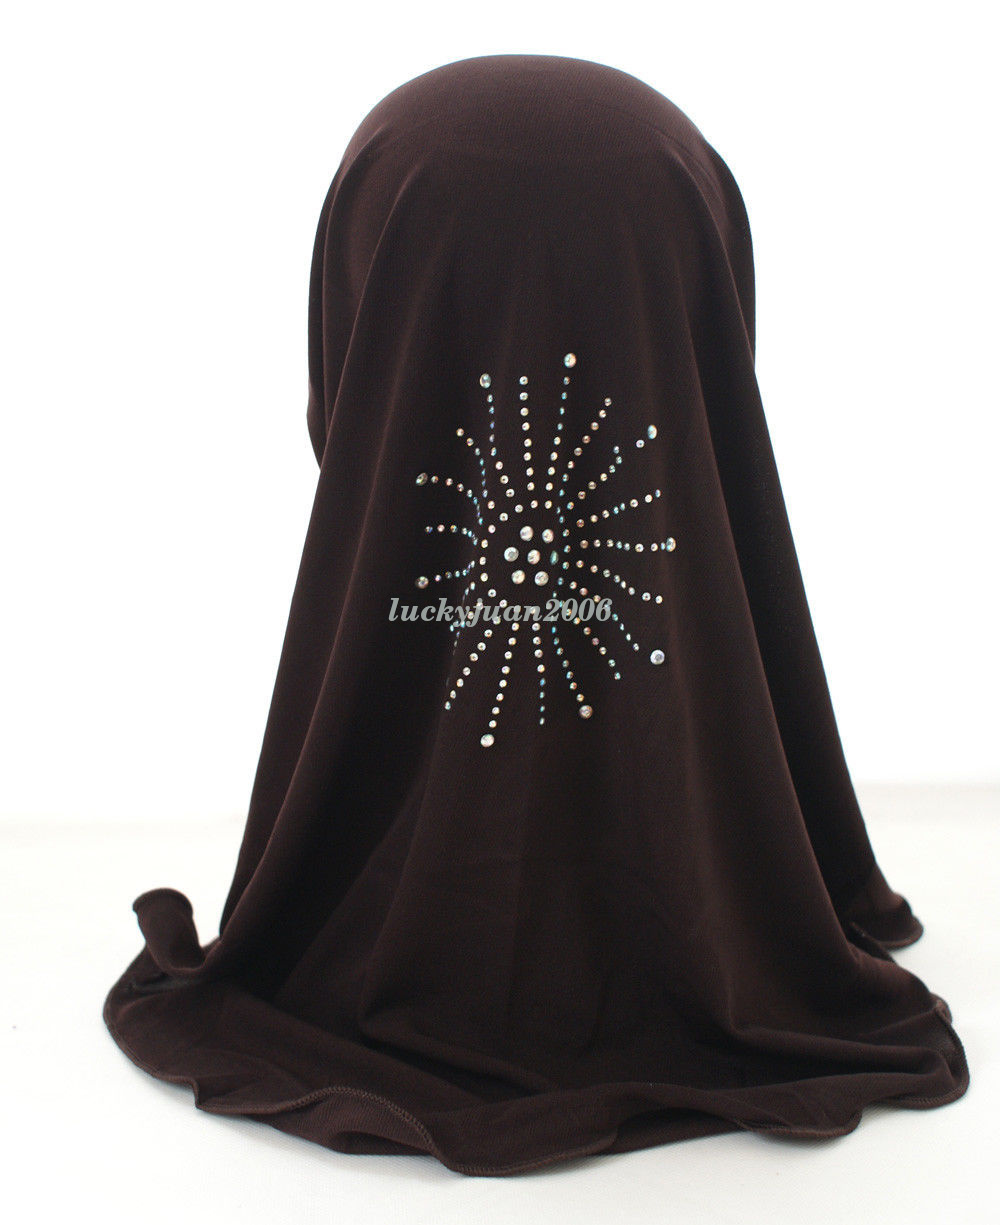 Girls-Kids-Muslim-Hijab-Hats-Islamic-Arab-Scarf-Caps-Shawls-Amira-Headwear-3-8Y thumbnail 26